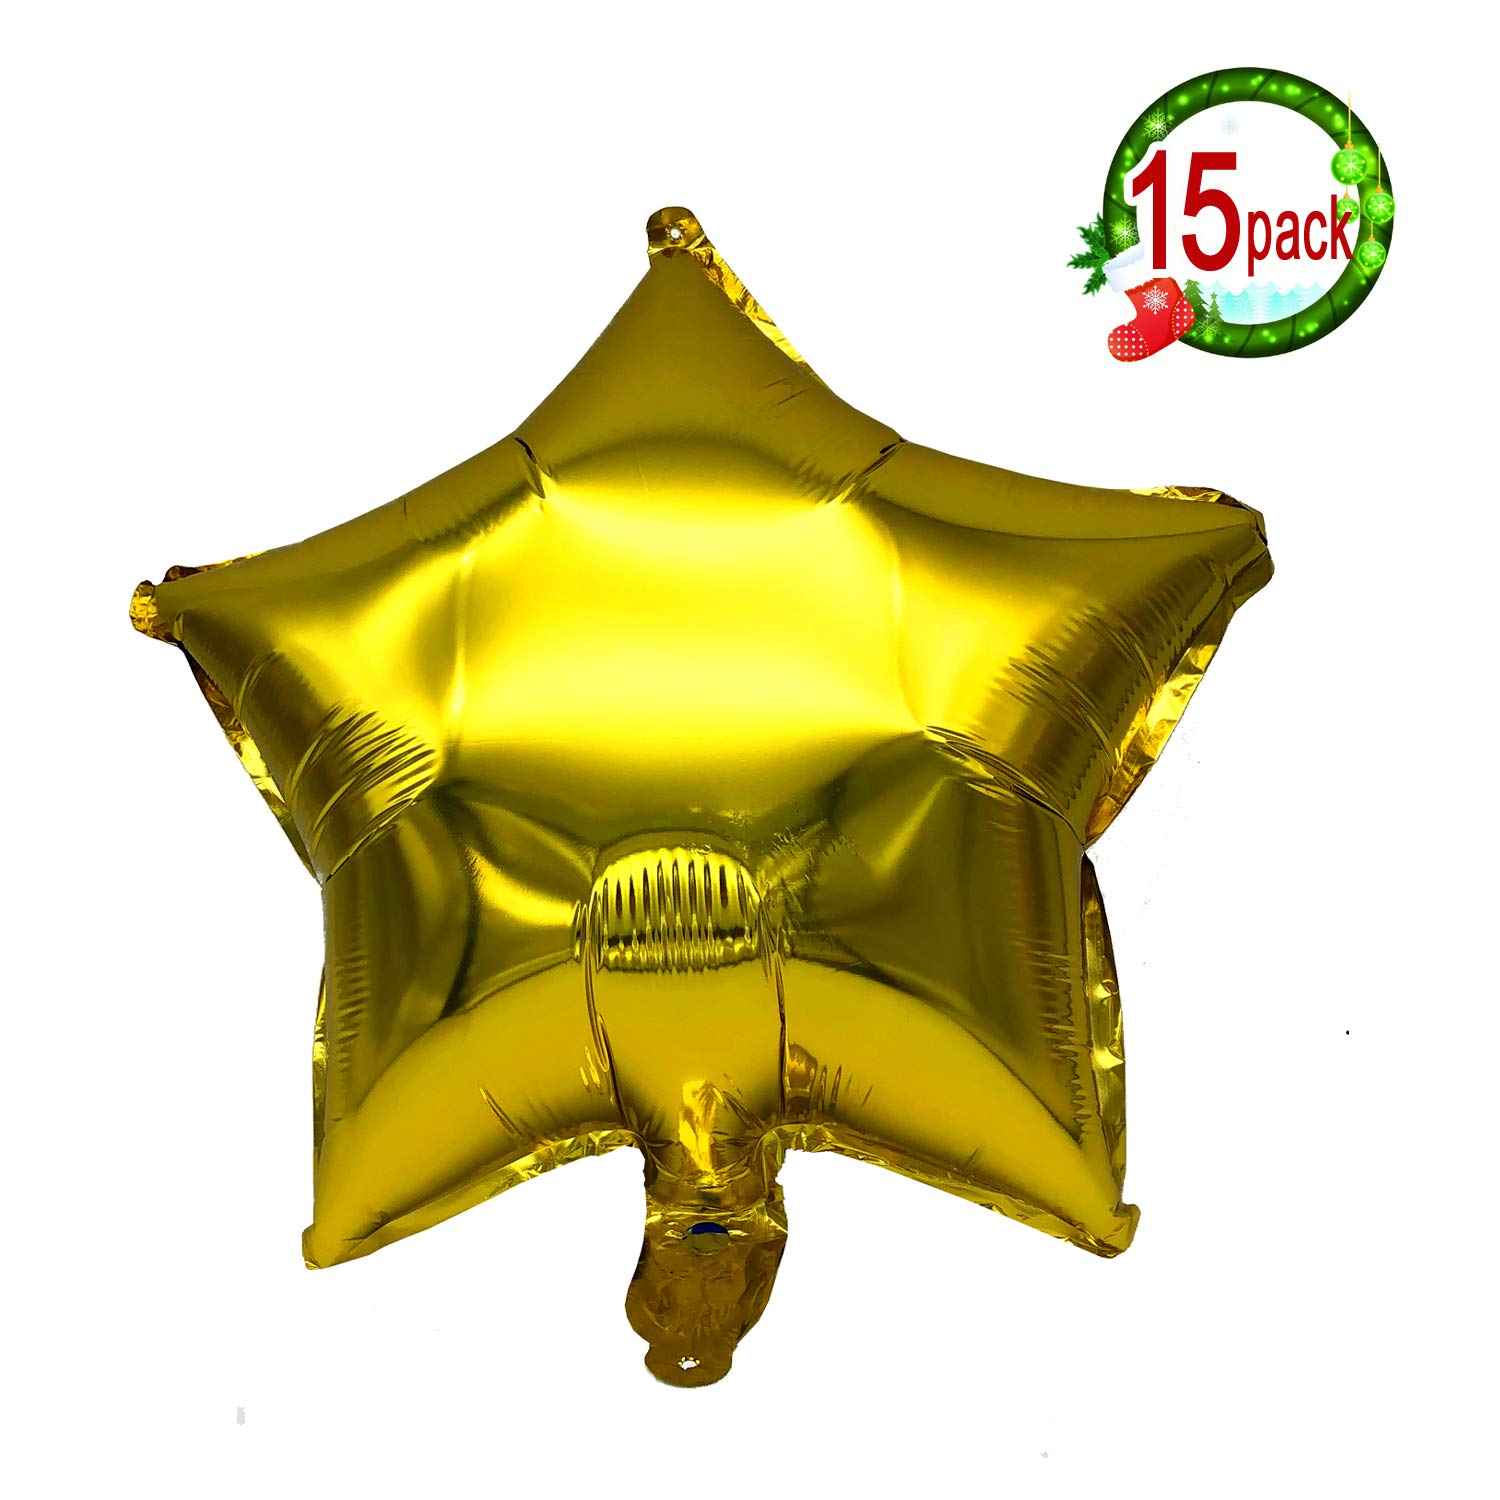 "15PCS 18"" Five Star Shape Foil Balloons Mylar Balloons for Graduation Party Supplies Birthday Party Wedding Decoration (Gold) jinzan"